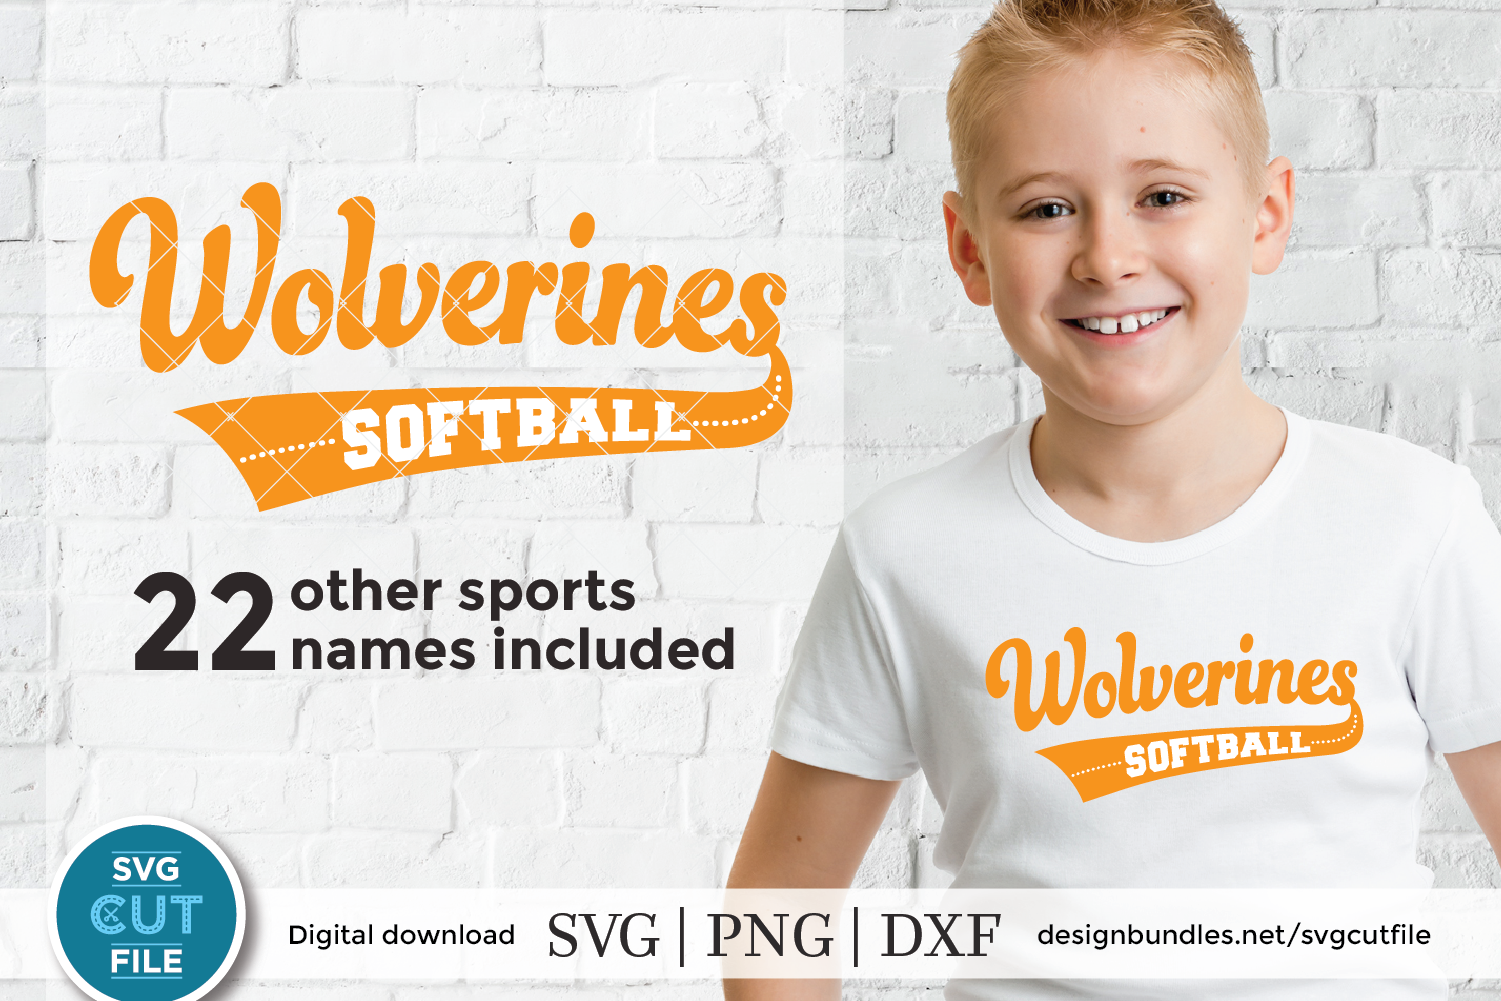 Wolverines svg, Wolverines svg bundle, Wolverines baseball example image 1